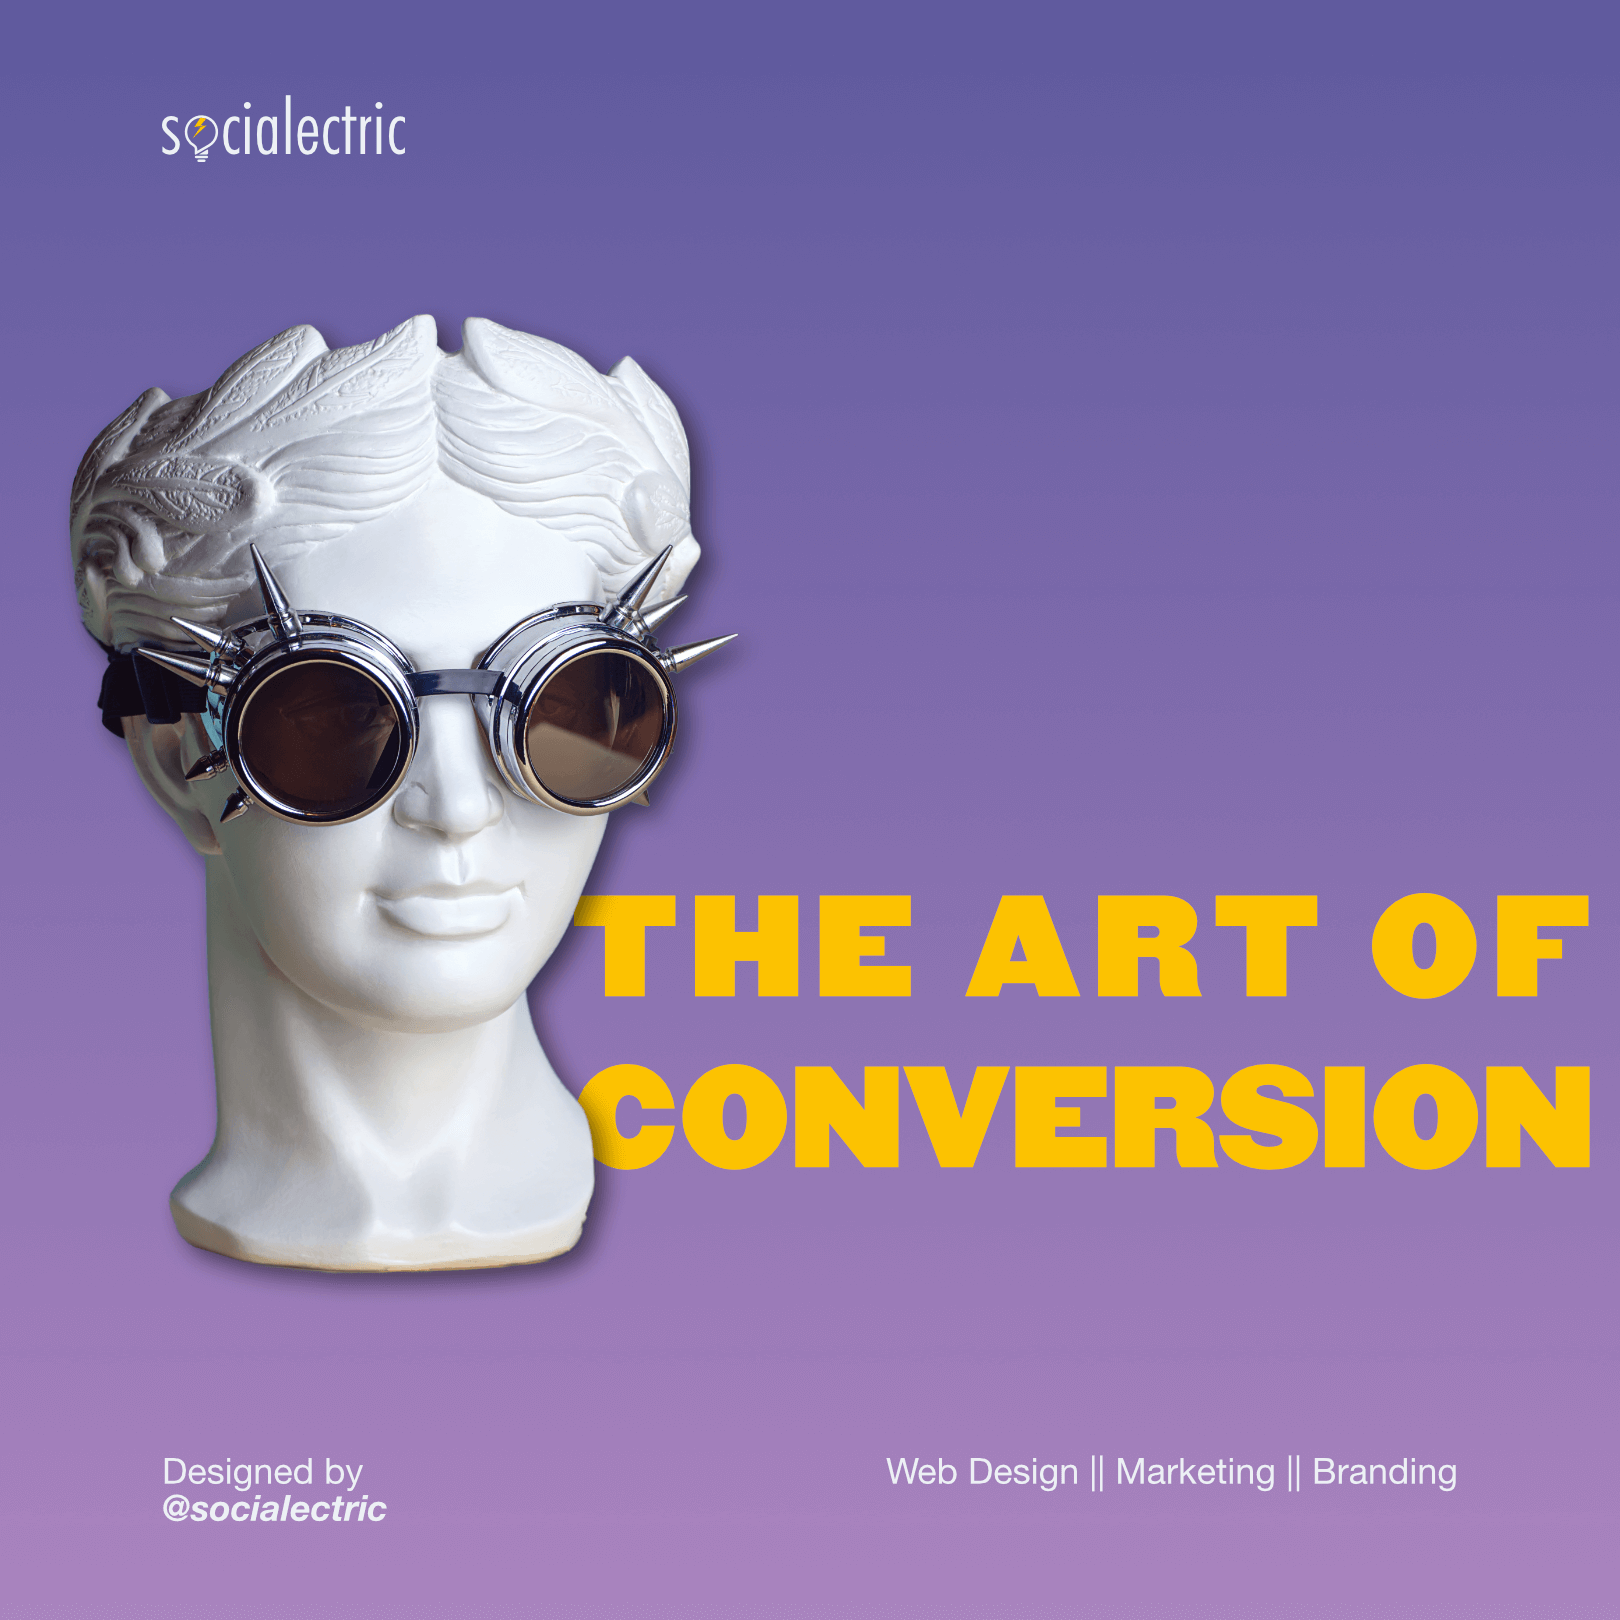 The Art of Conversion - Socialectric Instagram Posts